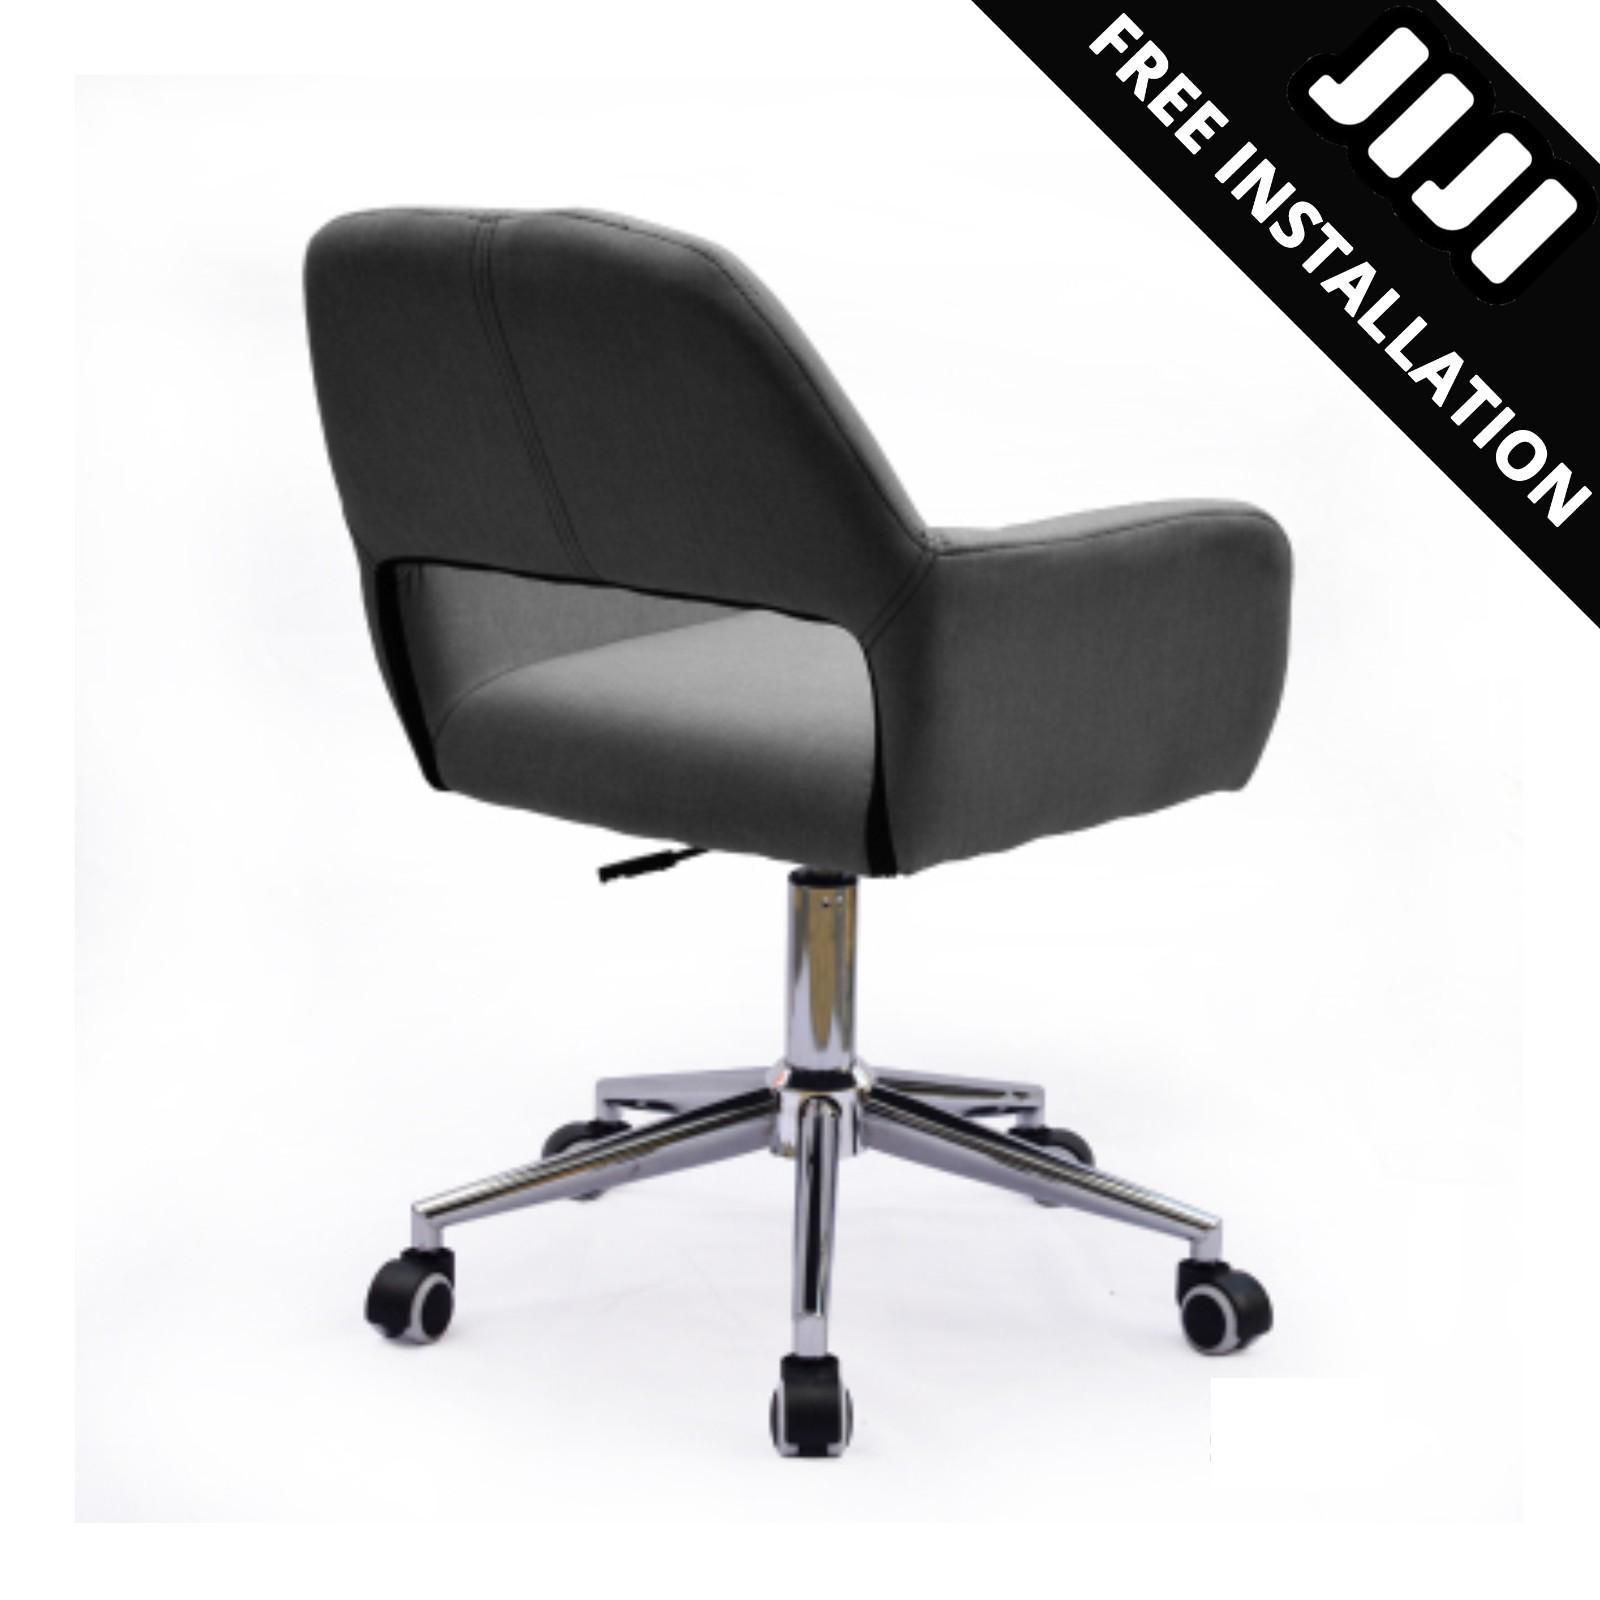 JIJI Office Supervisor Chair Ver 2 (Free Installation) - Office chair/Study chair/Gaming chair/Ergonomic/ Free 12 Months Warranty (SG)